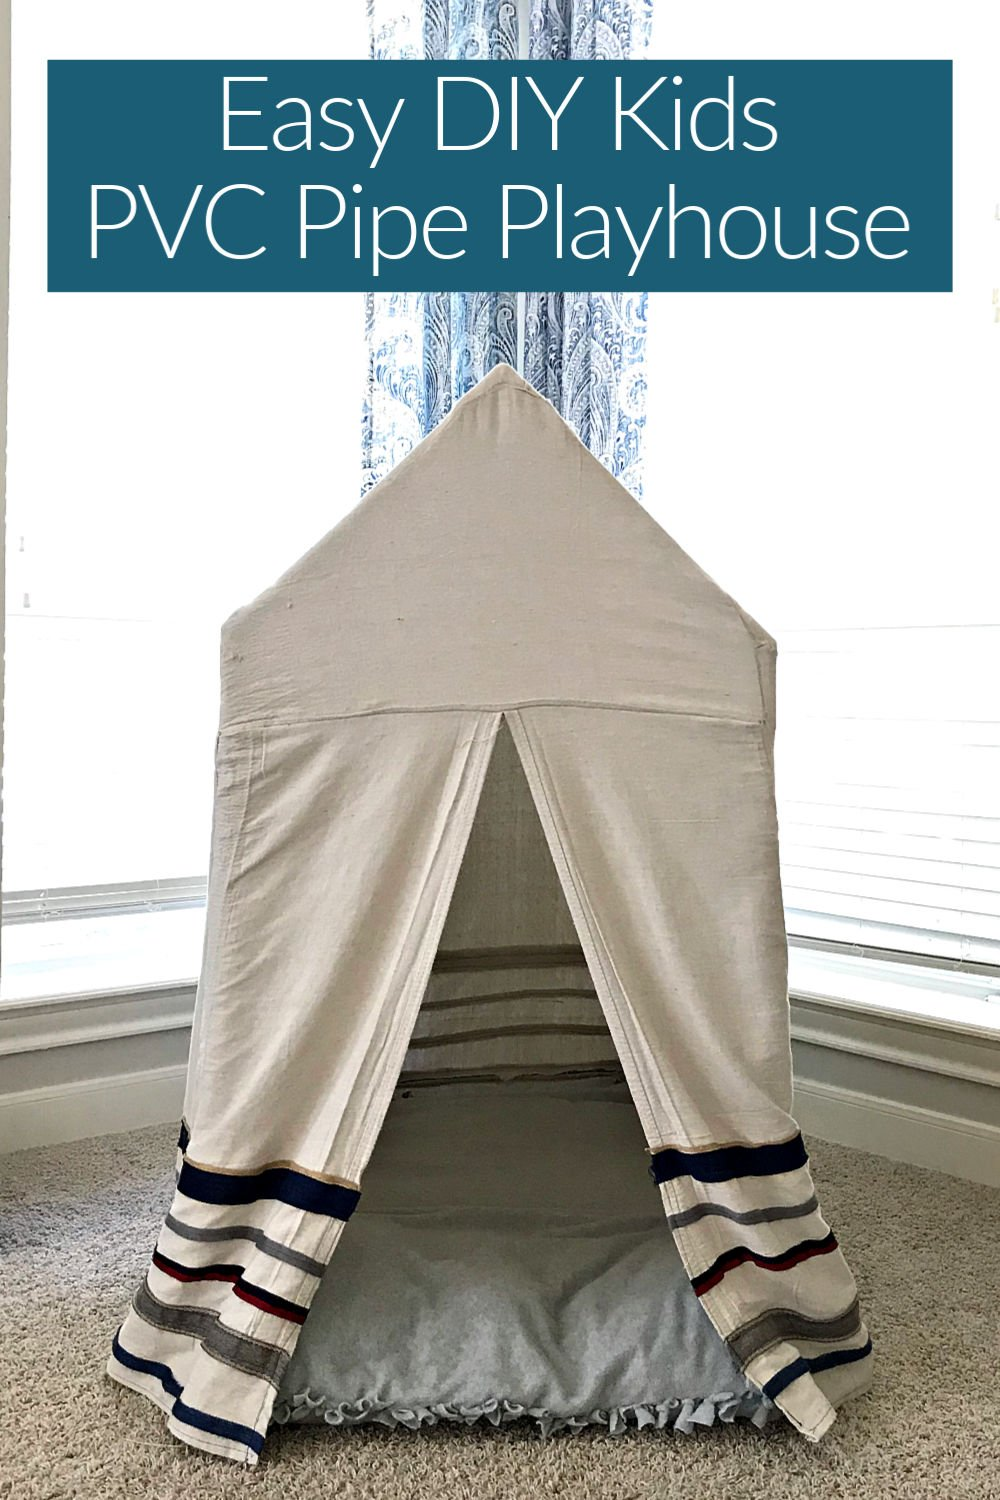 Here are the quick and easy steps to build a fun Kids PVC Pipe Tent. No power tools required. With easy to follow steps and build diagram, you can build this in a couple hours.